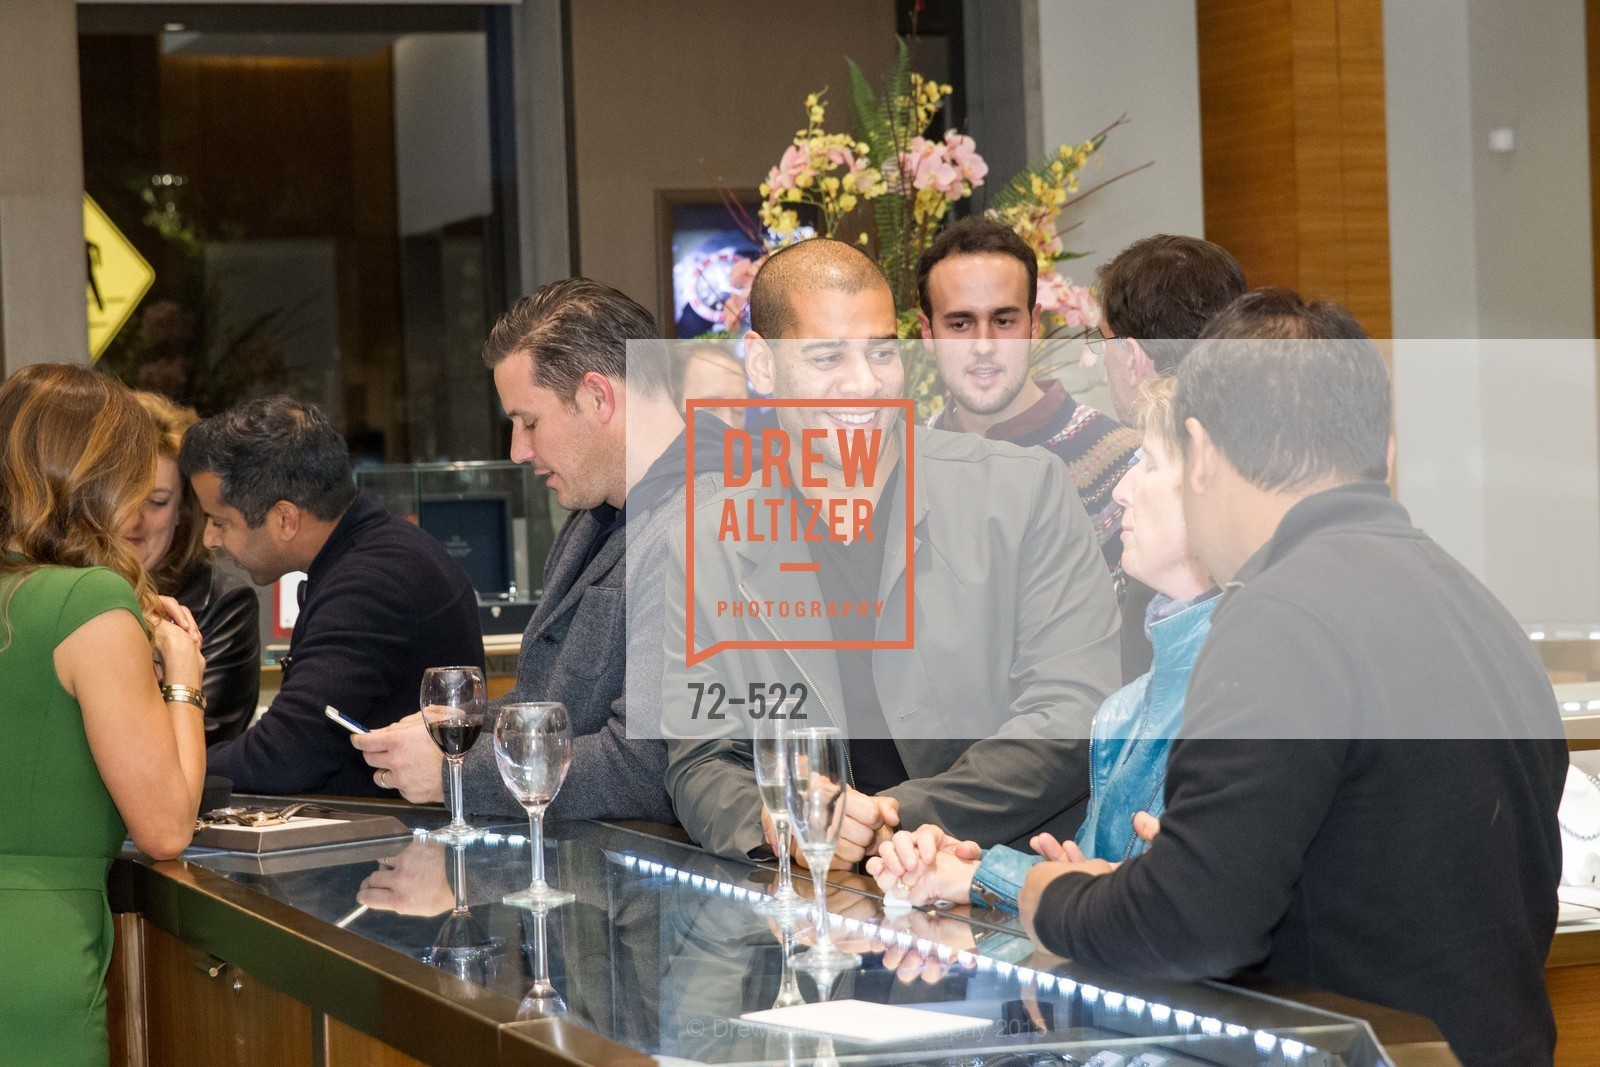 Extras, Shreve & Co of Palo Alto Presents The Panerai Collections, November 11th, 2015, Photo,Drew Altizer, Drew Altizer Photography, full-service agency, private events, San Francisco photographer, photographer california